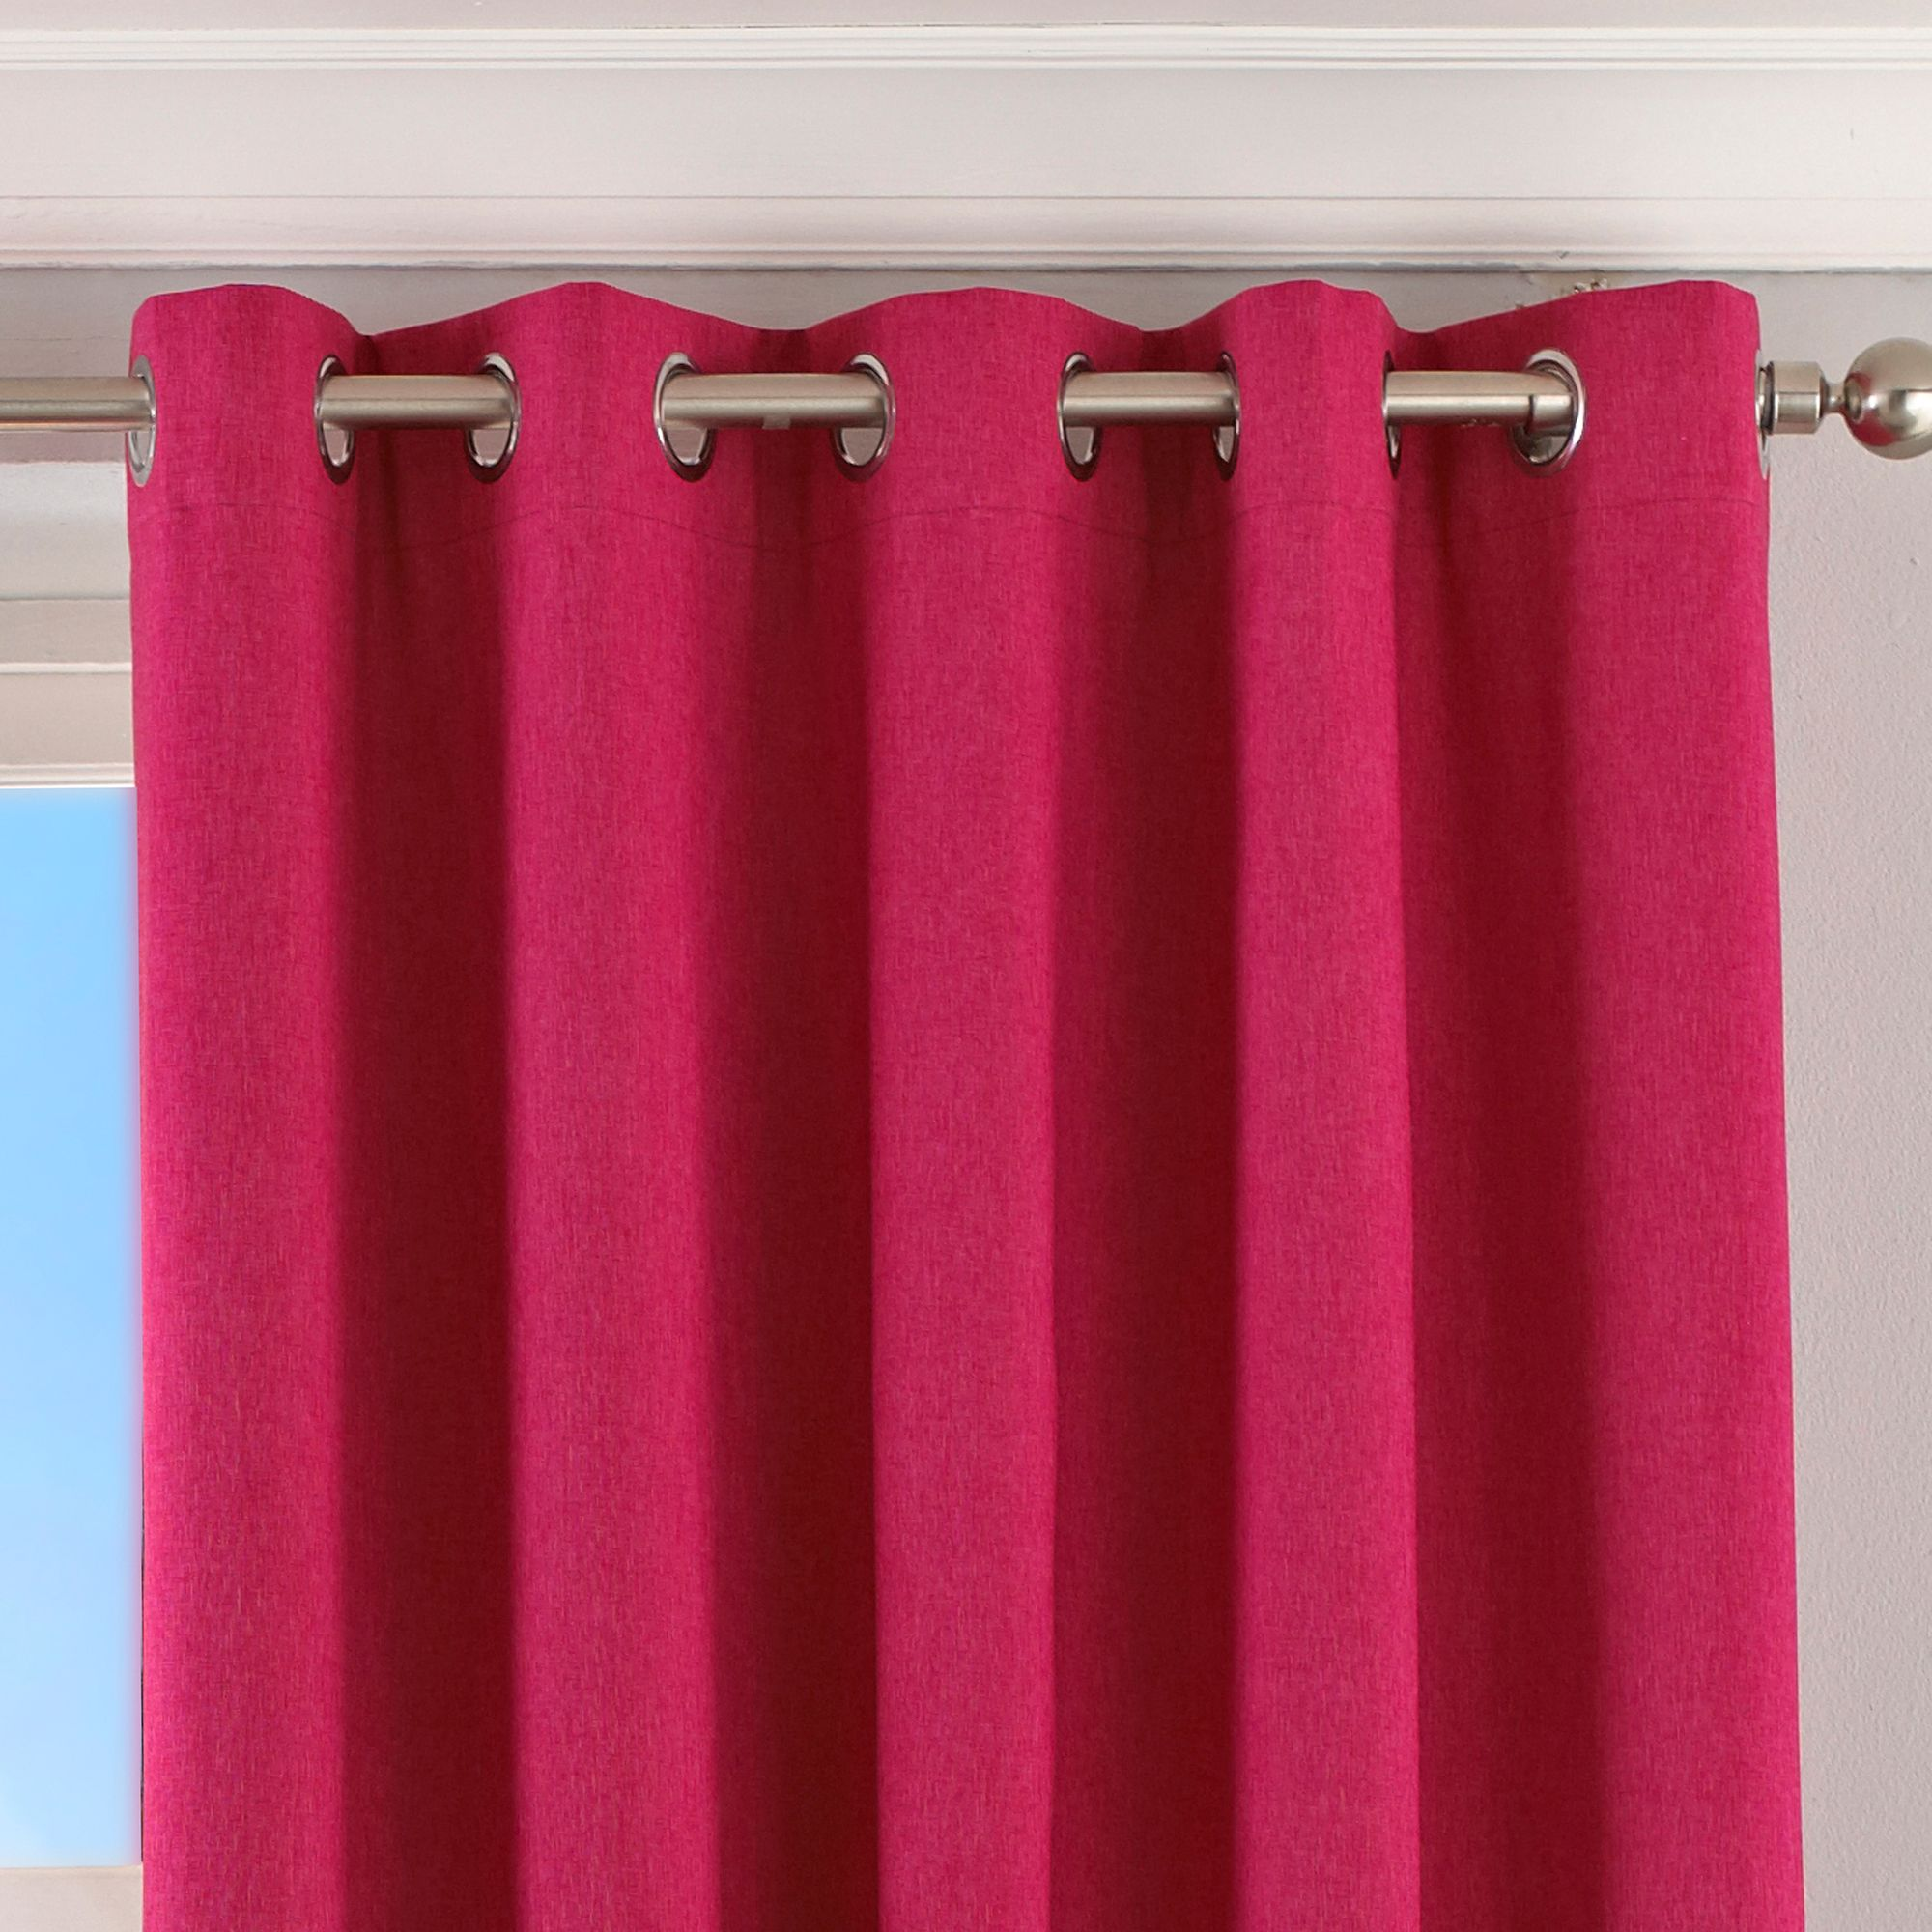 Twilight Blackout Eyelet Curtains in Pink